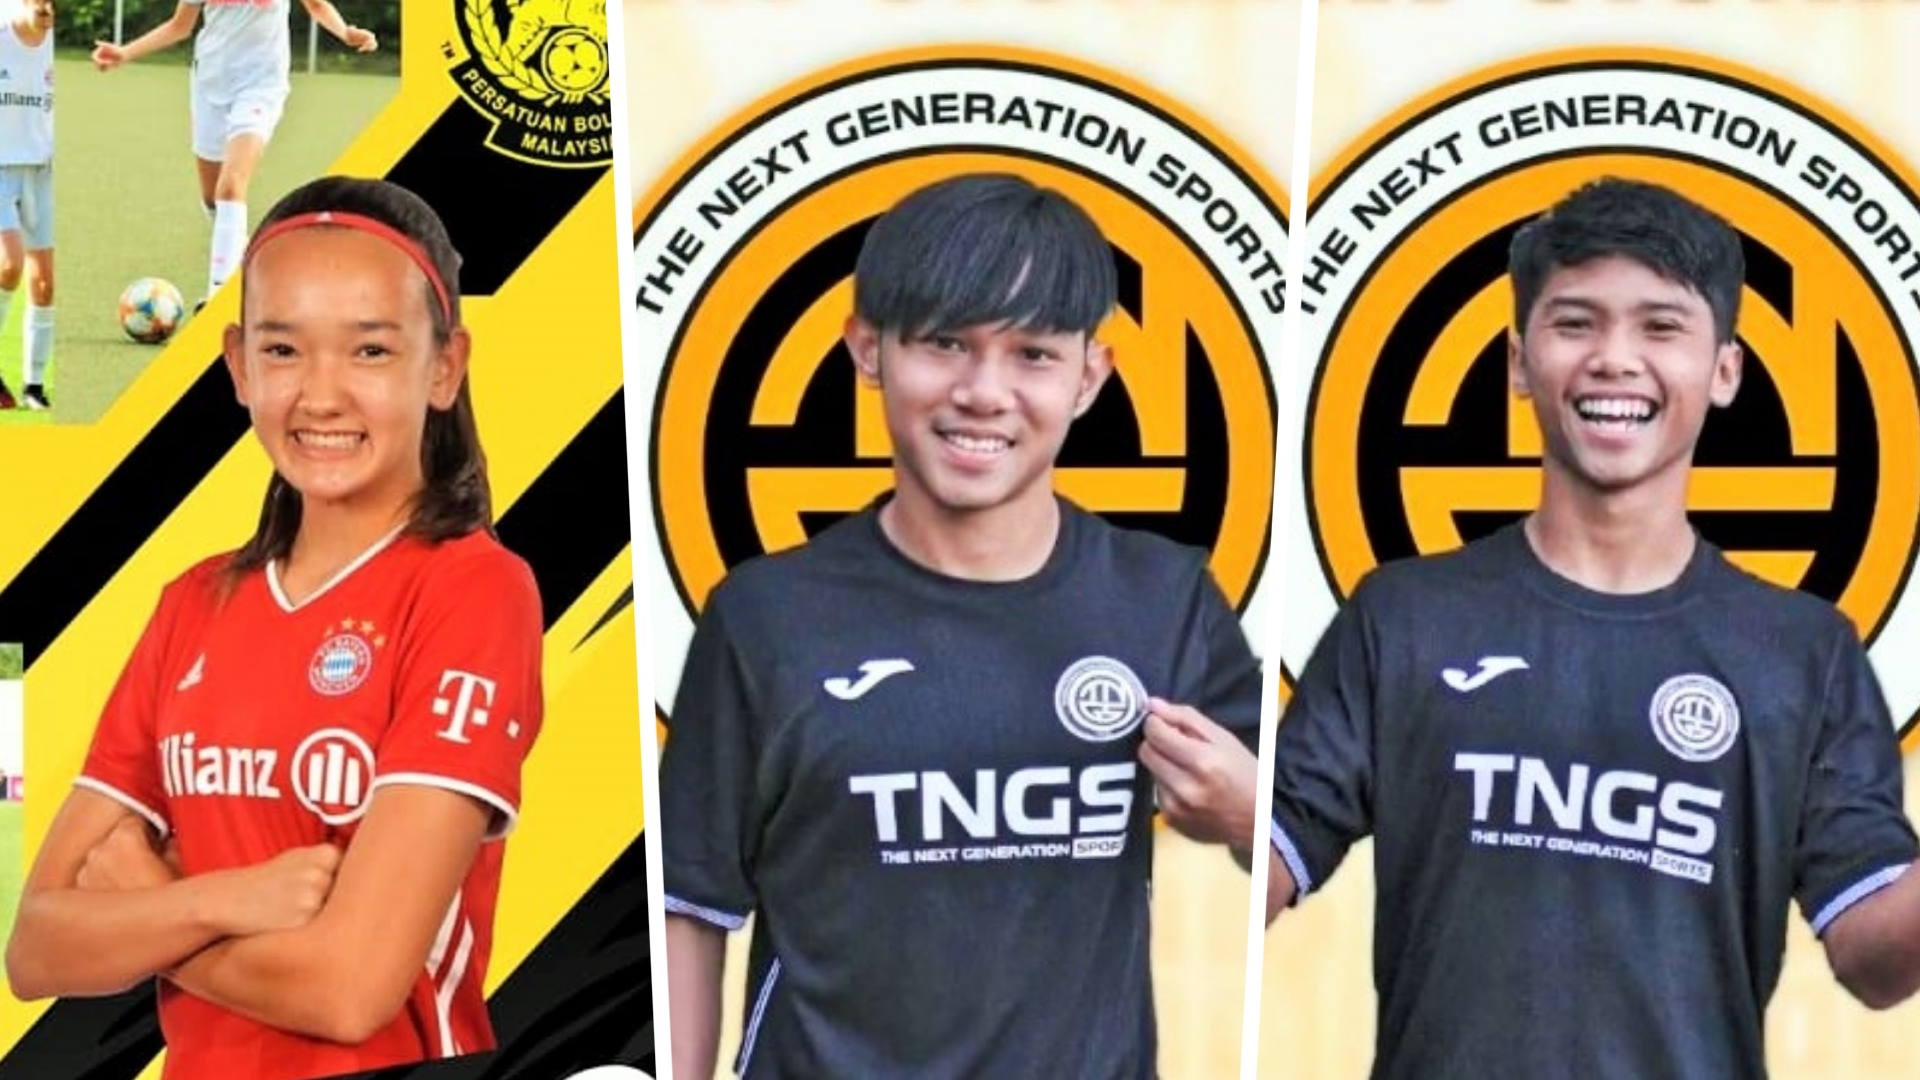 Three more bold, ambitious Malaysian teenagers join overseas fray